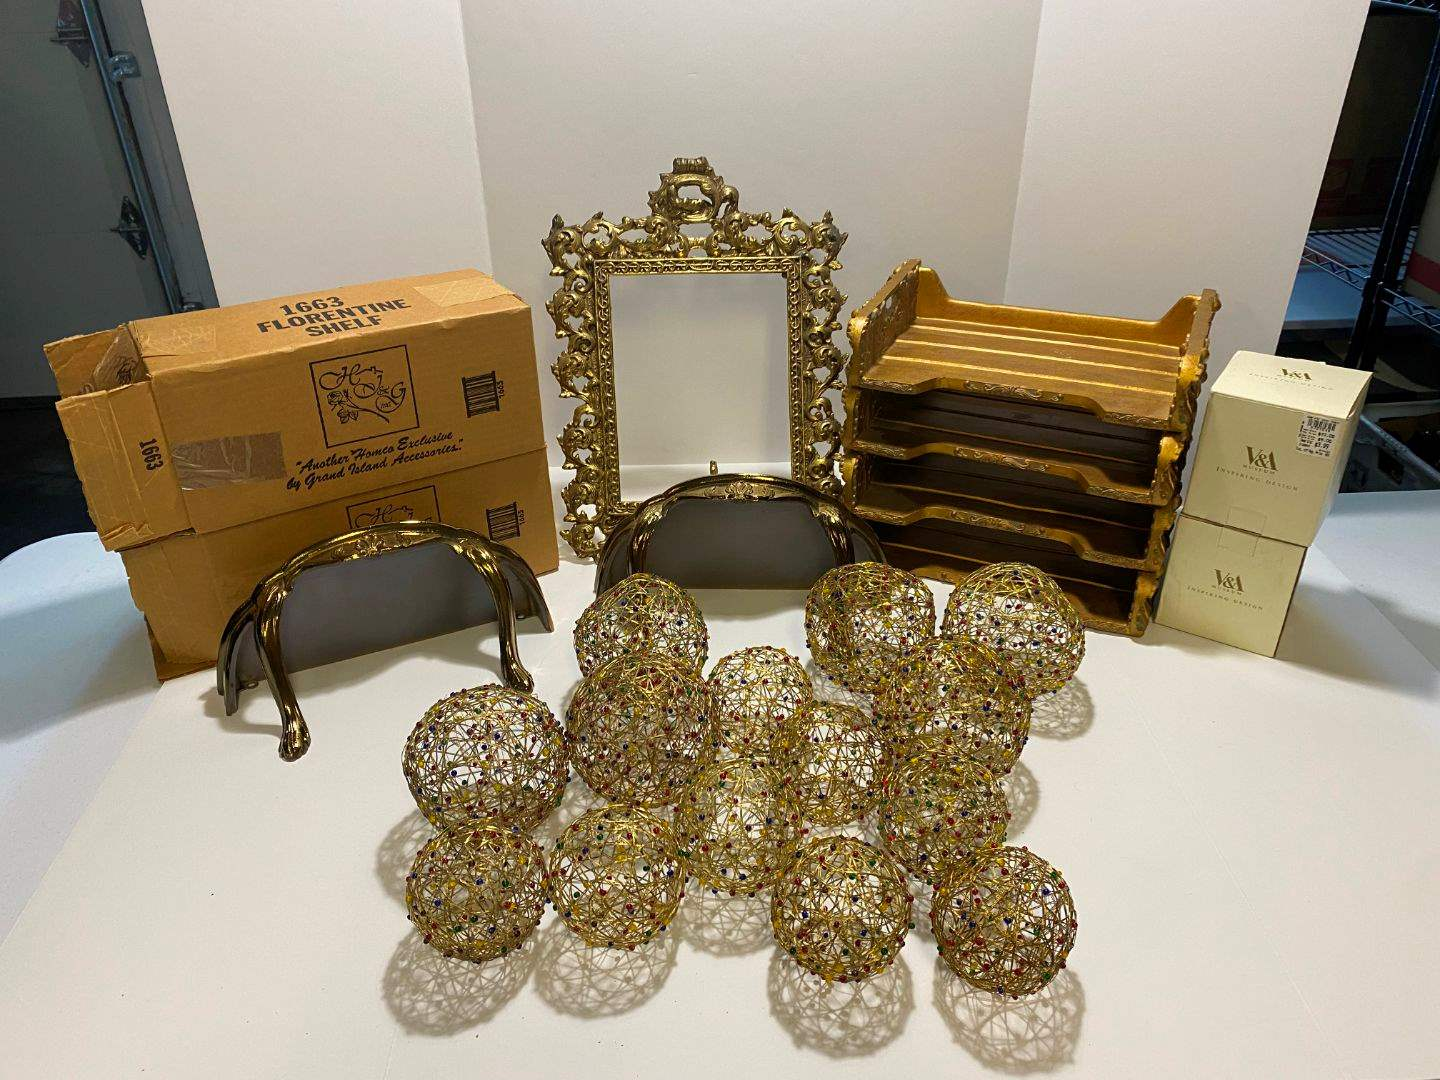 Lot # 367 - Decorative Balls, Heavy Brass Picture Frame, 2 New Florentine Shelves & 4 Slot Resin Office Organizer (main image)